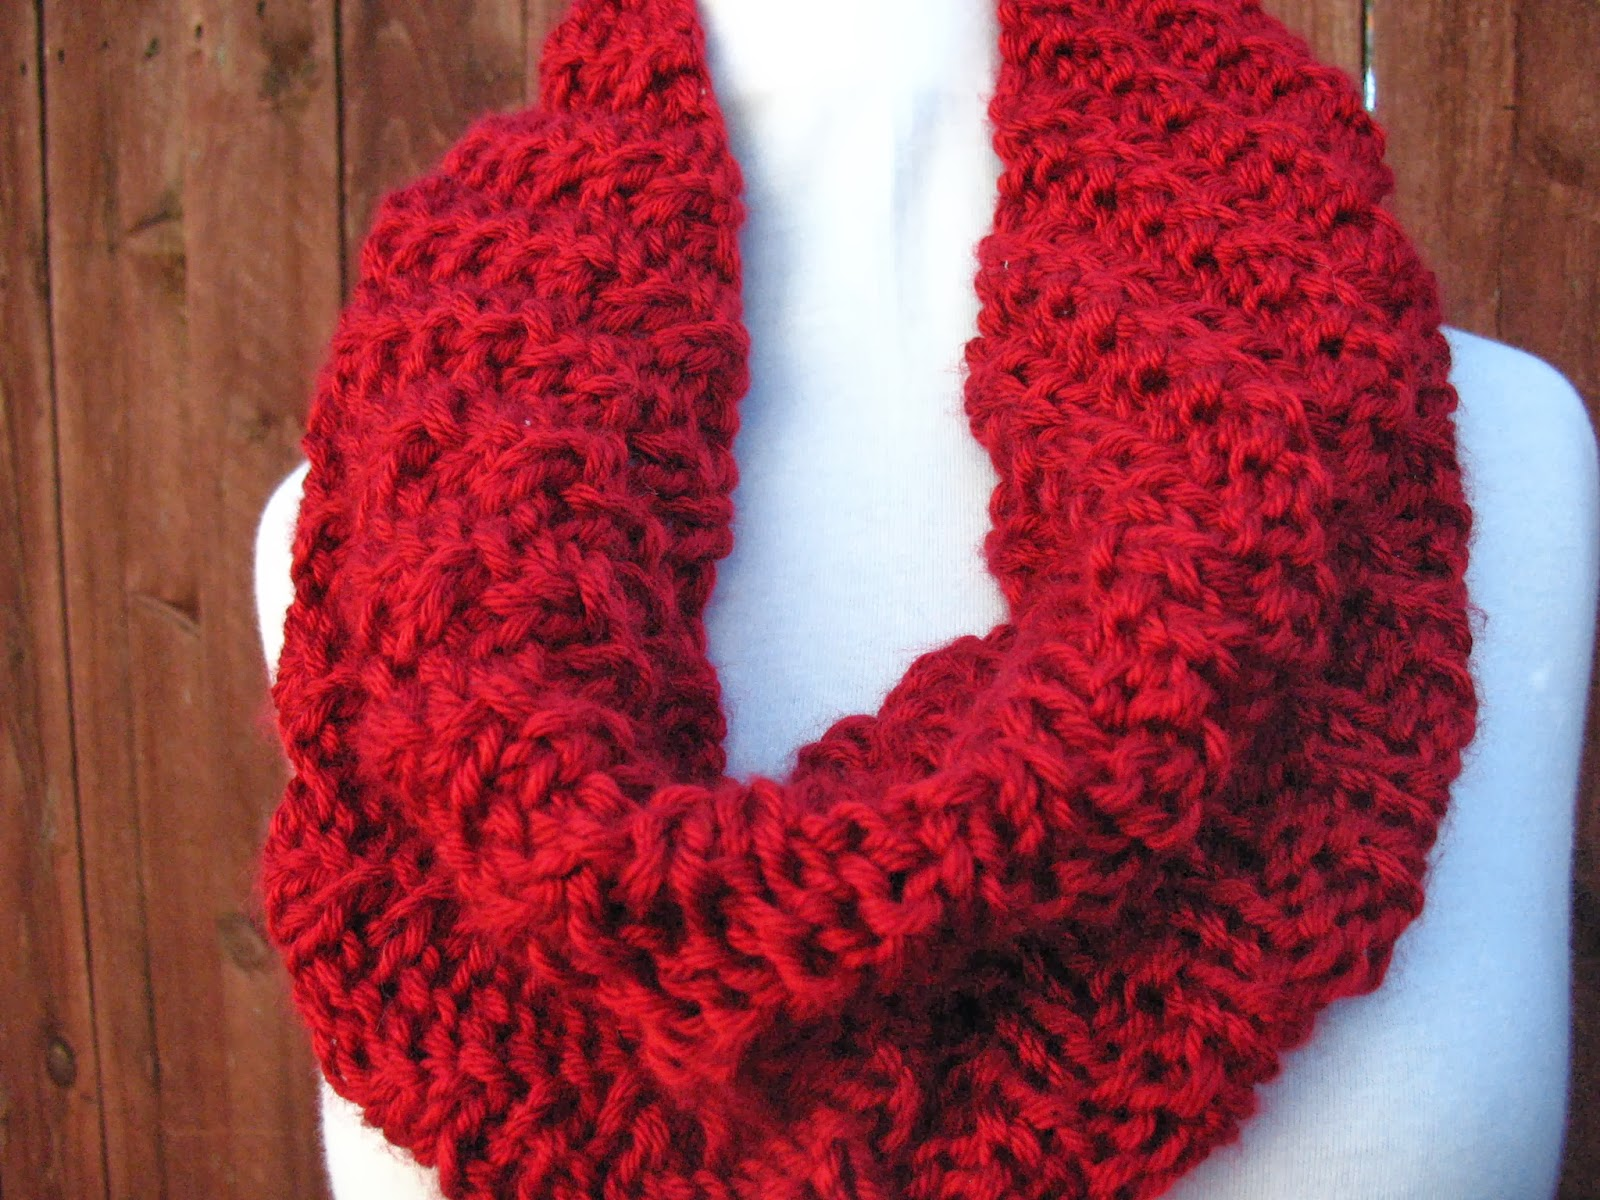 Caron Simply Soft Knitting Patterns : Christine Designs: Knit it Tonight Cowl